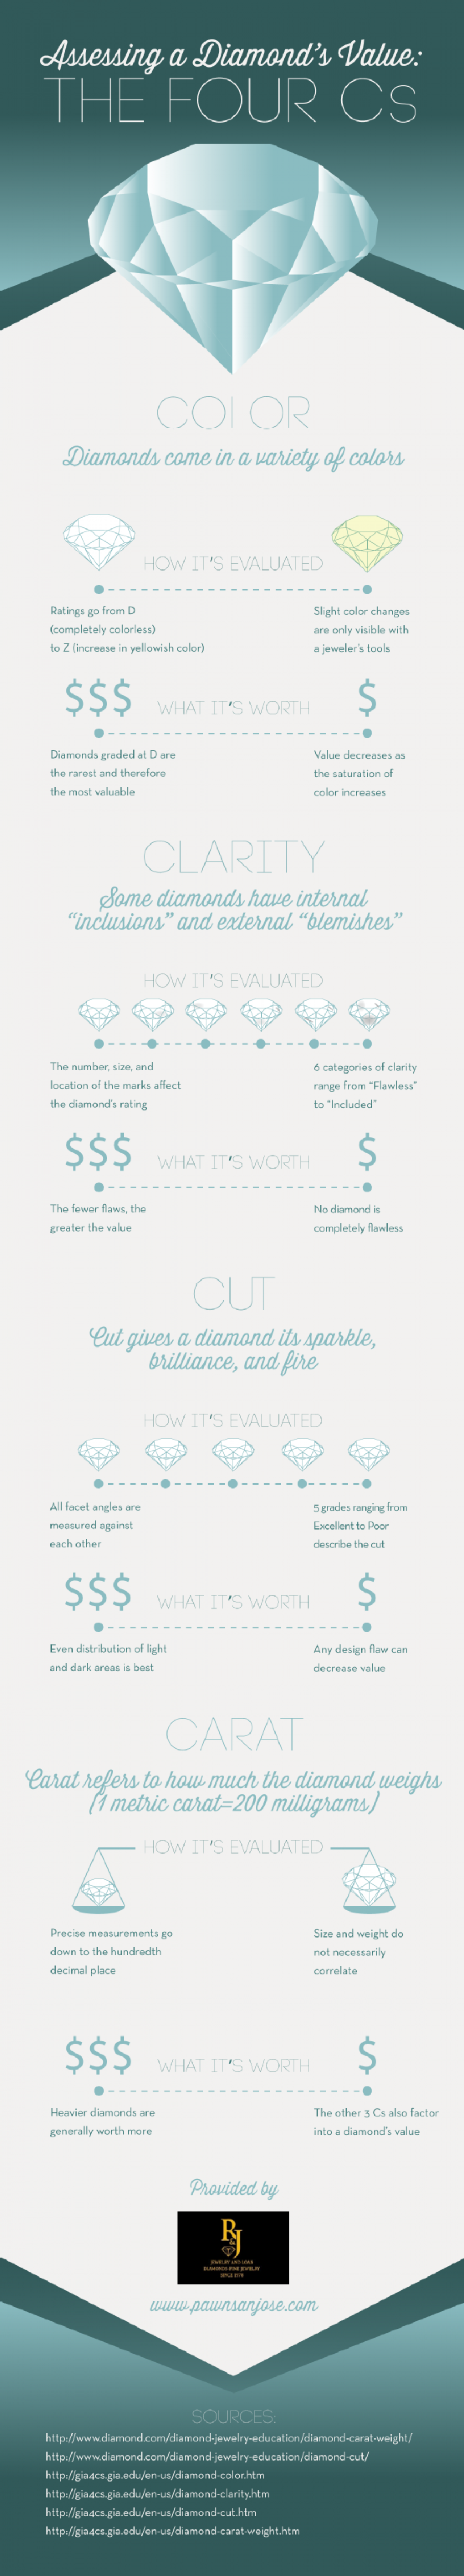 Assessing a Diamond's Value: The Four Cs Infographic